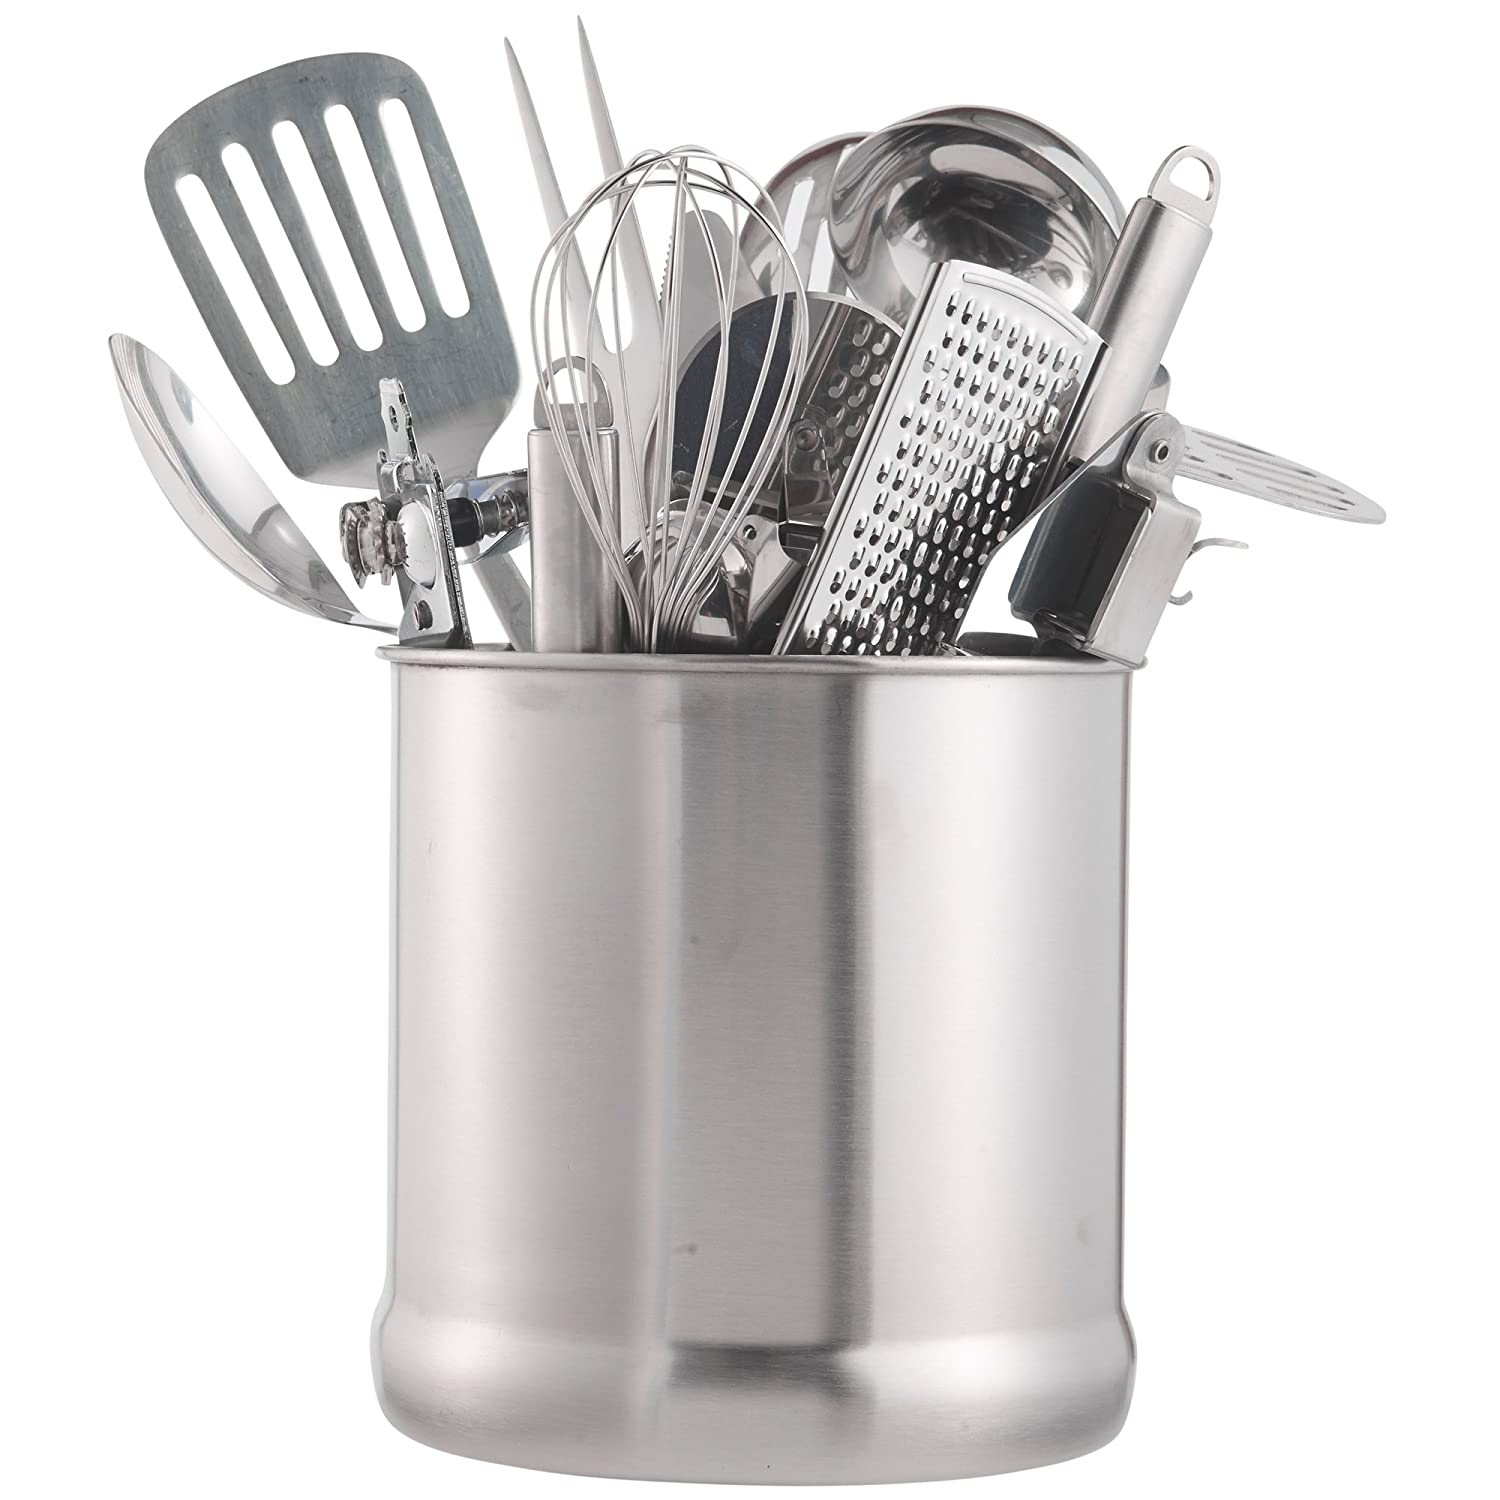 Amazon.com   VonShef Stainless Steel Utensil Holder Large Capacity  Organizer Caddy, Great For Keeping Your Kitchen Tidy, 7 Inches High